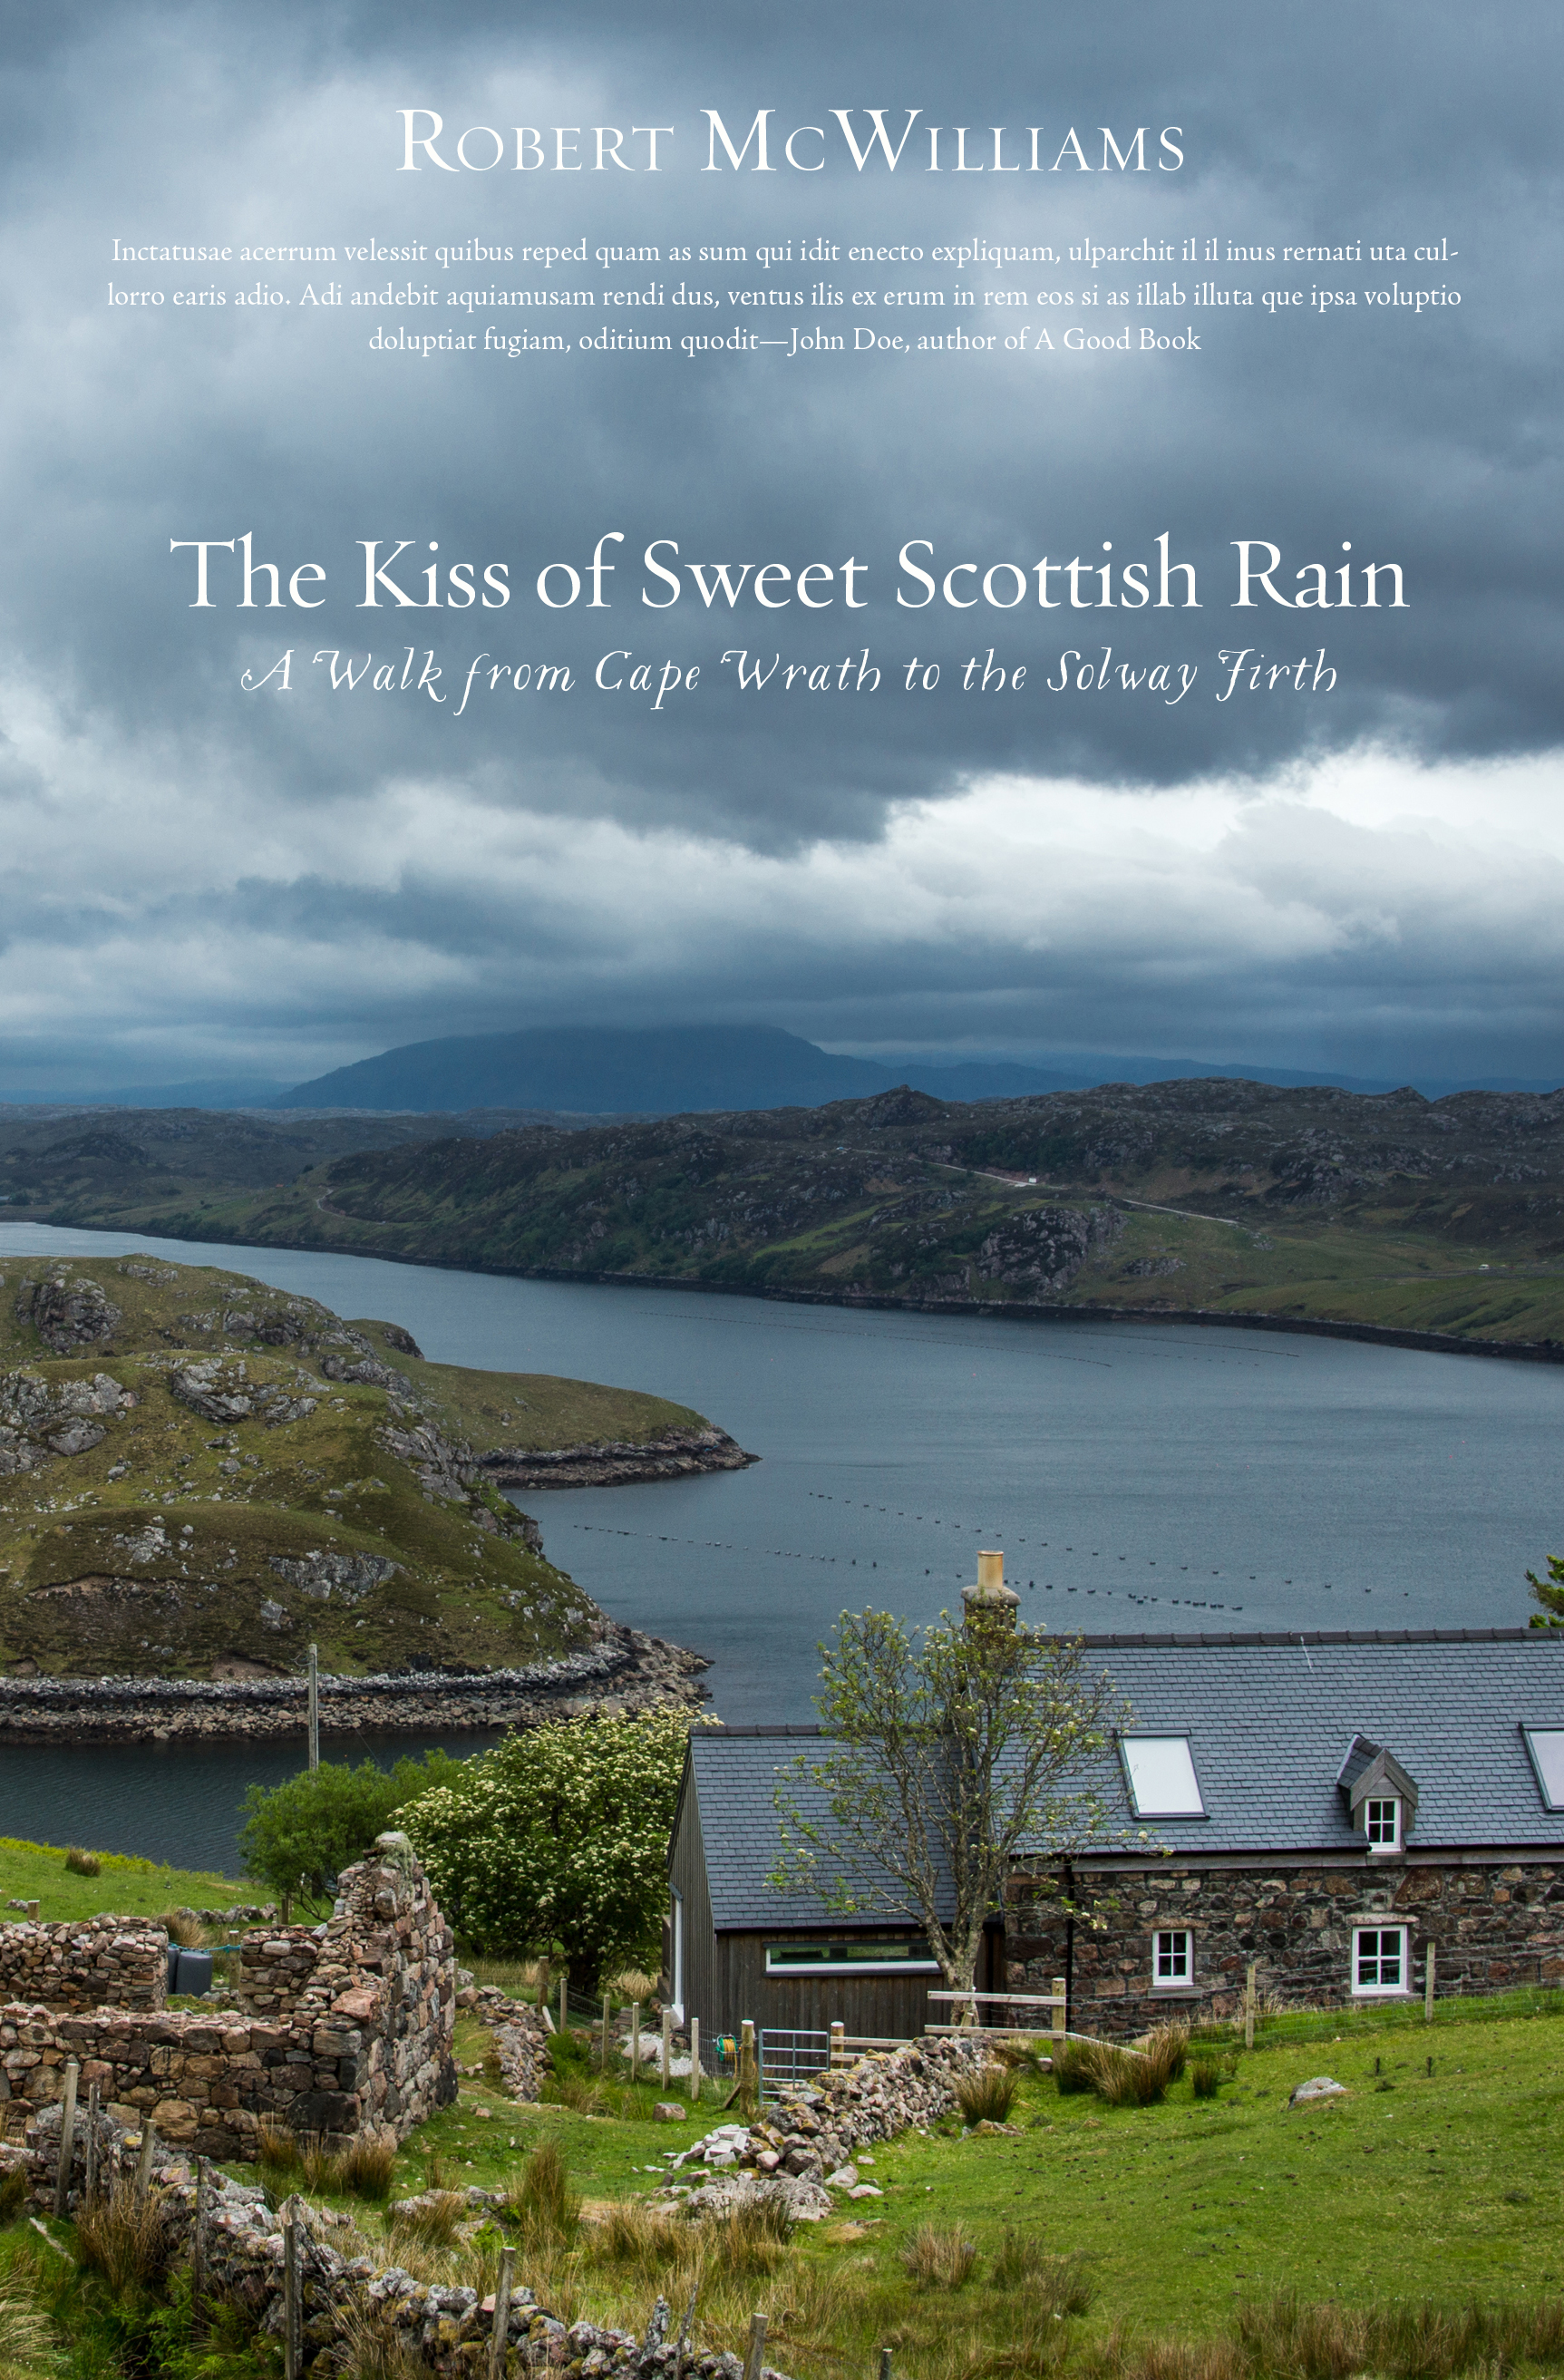 The Kiss of the Sweet Scottish Rain